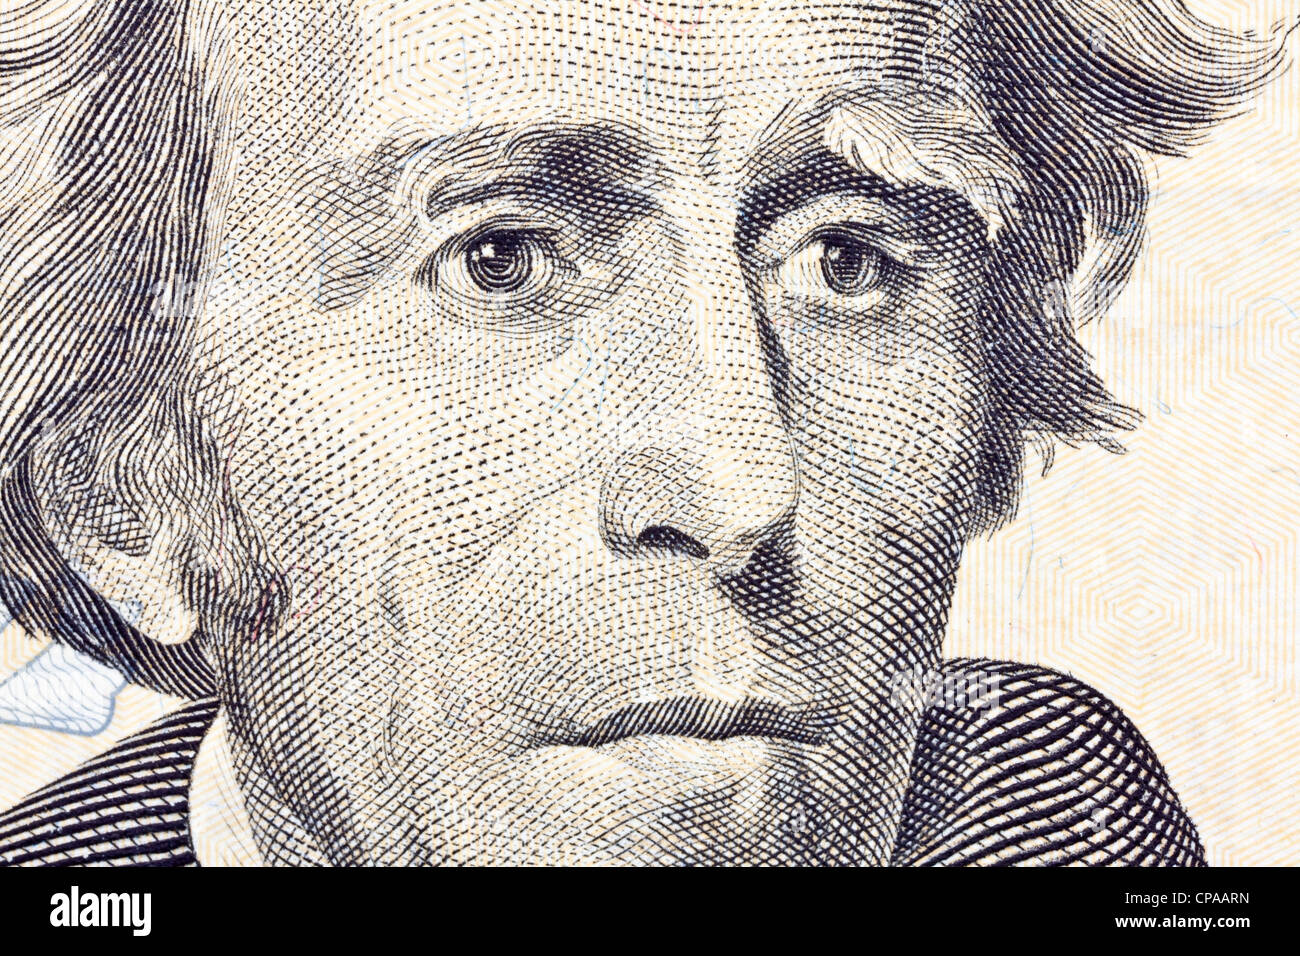 andrew jackson twenty dollar bill